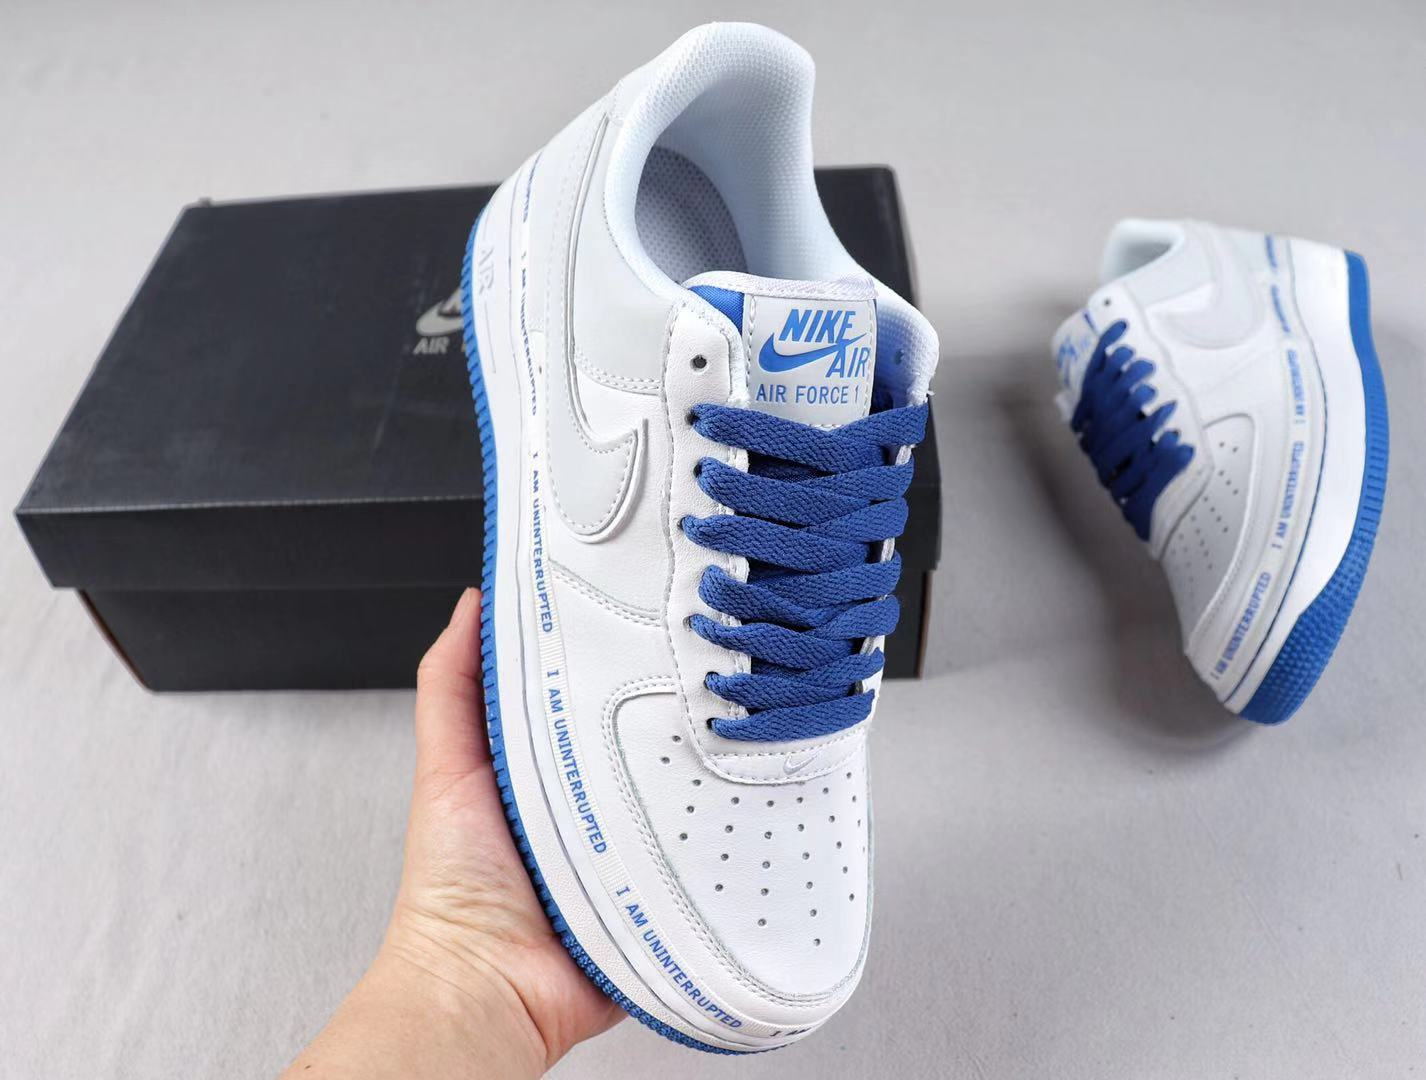 Nike Air Force 1 x Uninterrupted CQ0494-100 White/Lapis Blue In Stock